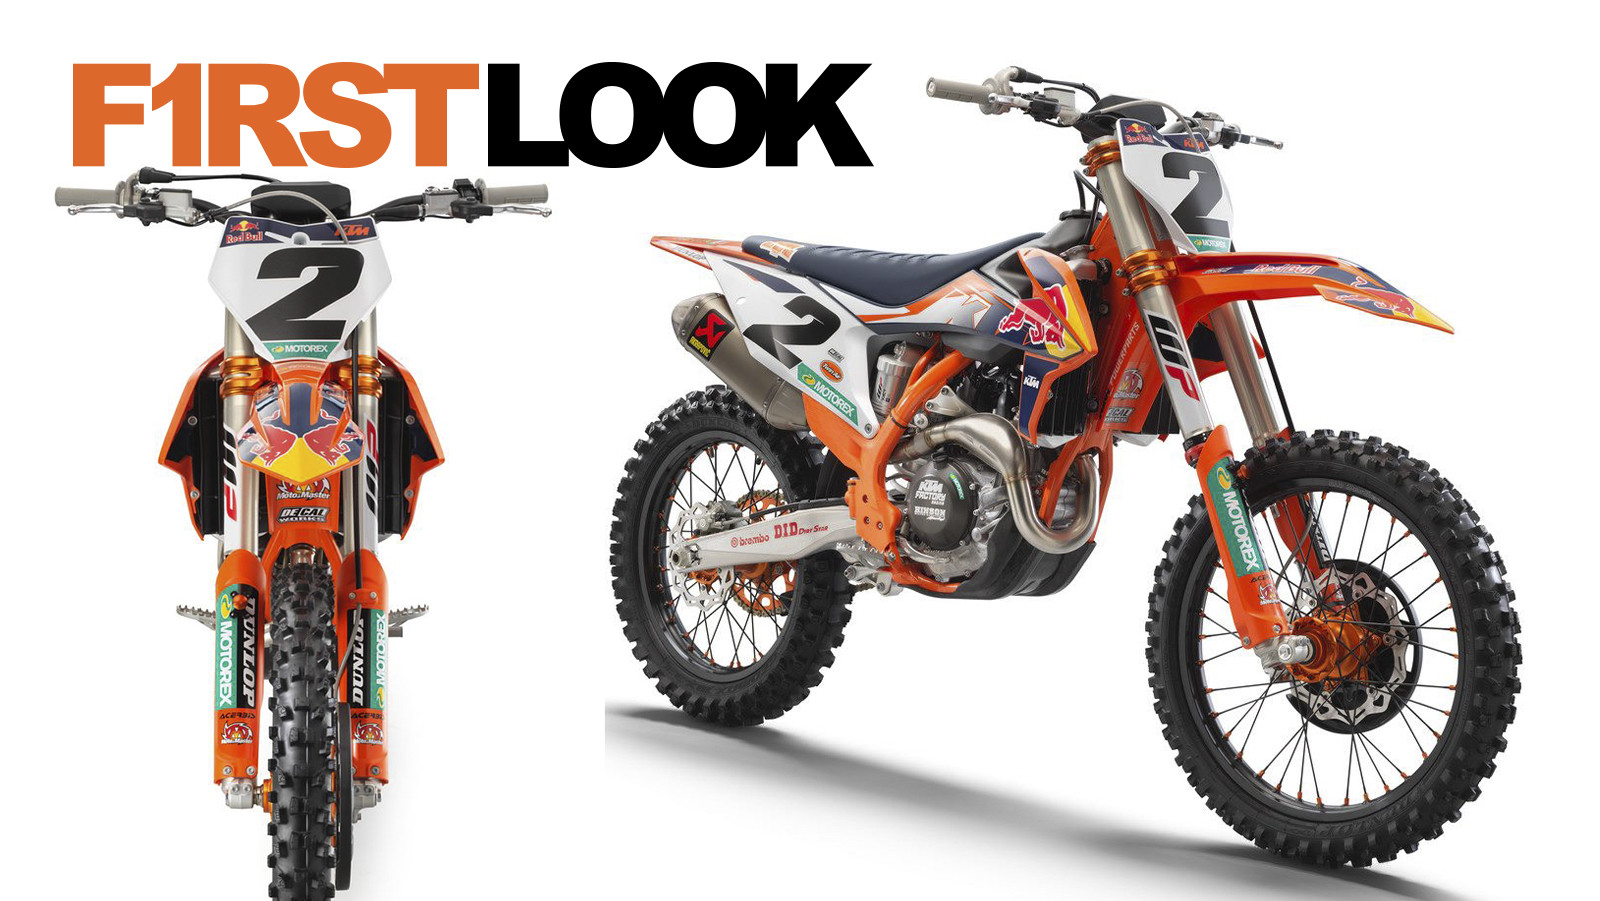 First Look: 2021 KTM 450 SX-F Factory Edition